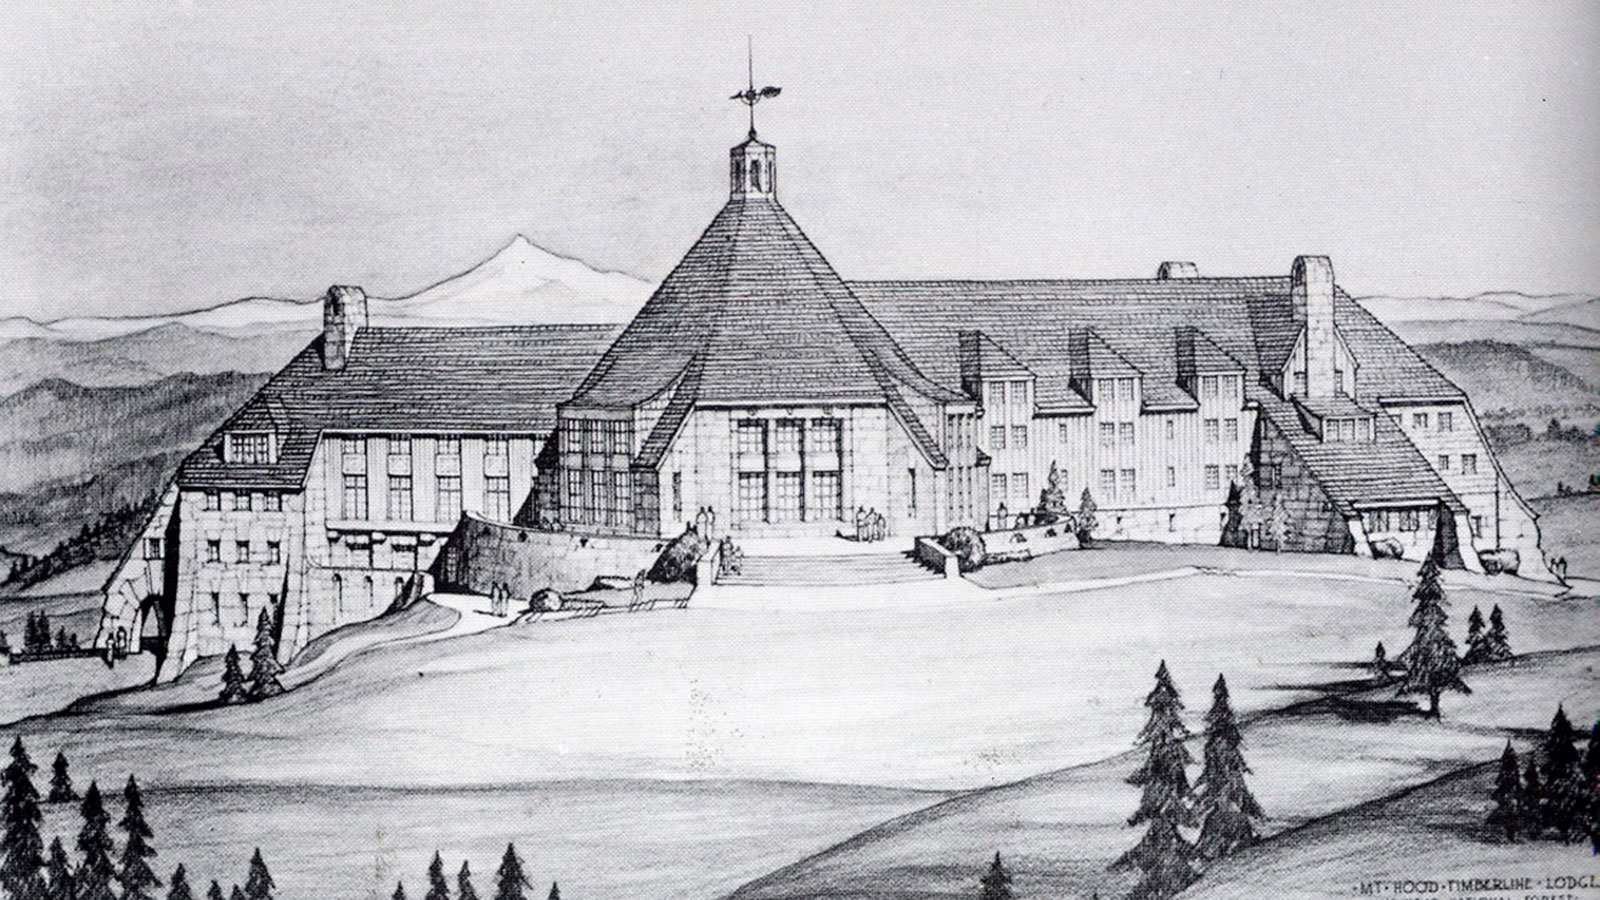 Historic image of hotel exterior Timberline Lodge, 1937, Member of Historic Hotels of America, in Timberline, Oregon, Discover